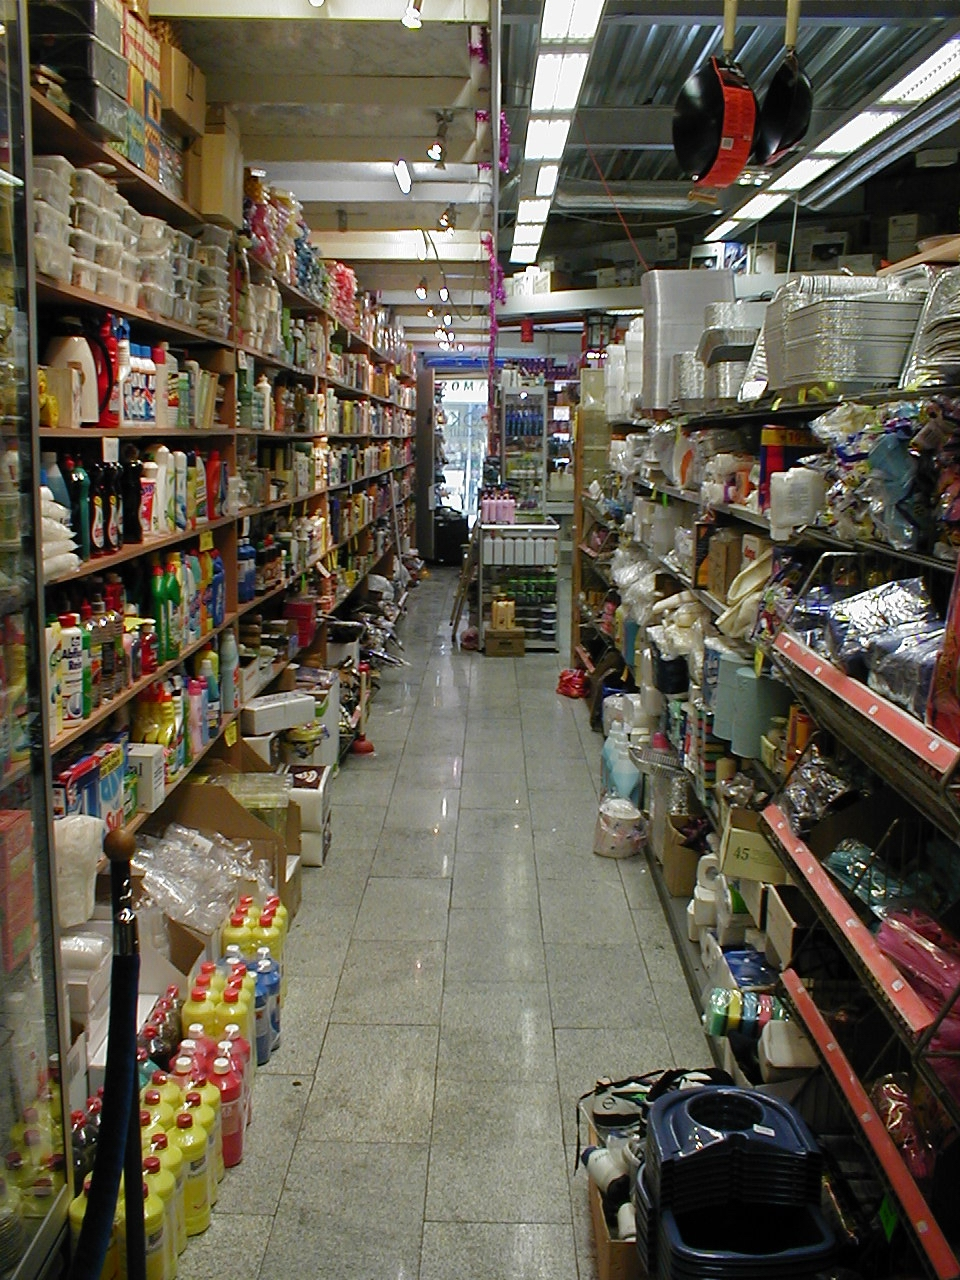 dario messy store shop shelves products